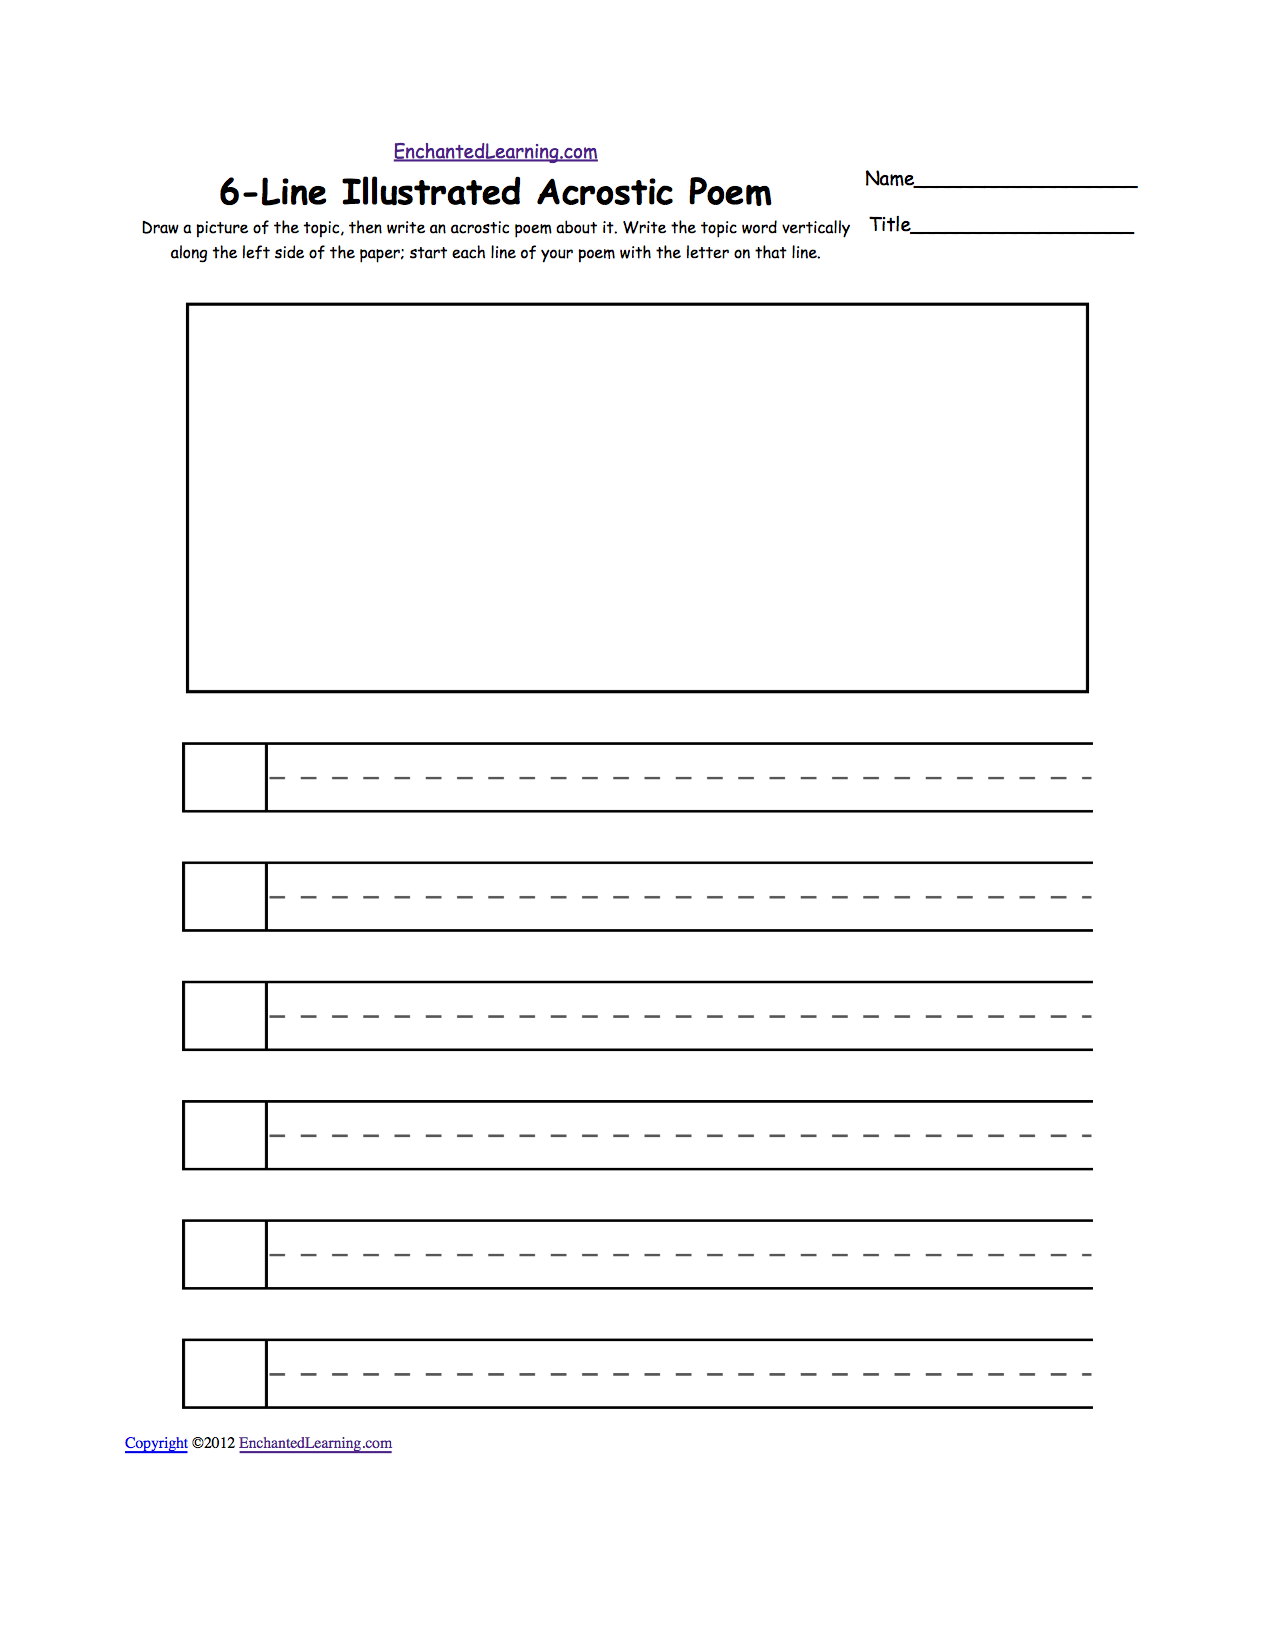 Blank Illustrated Acrostic Poem Worksheets Handwriting Lines – Lined Paper with Drawing Box